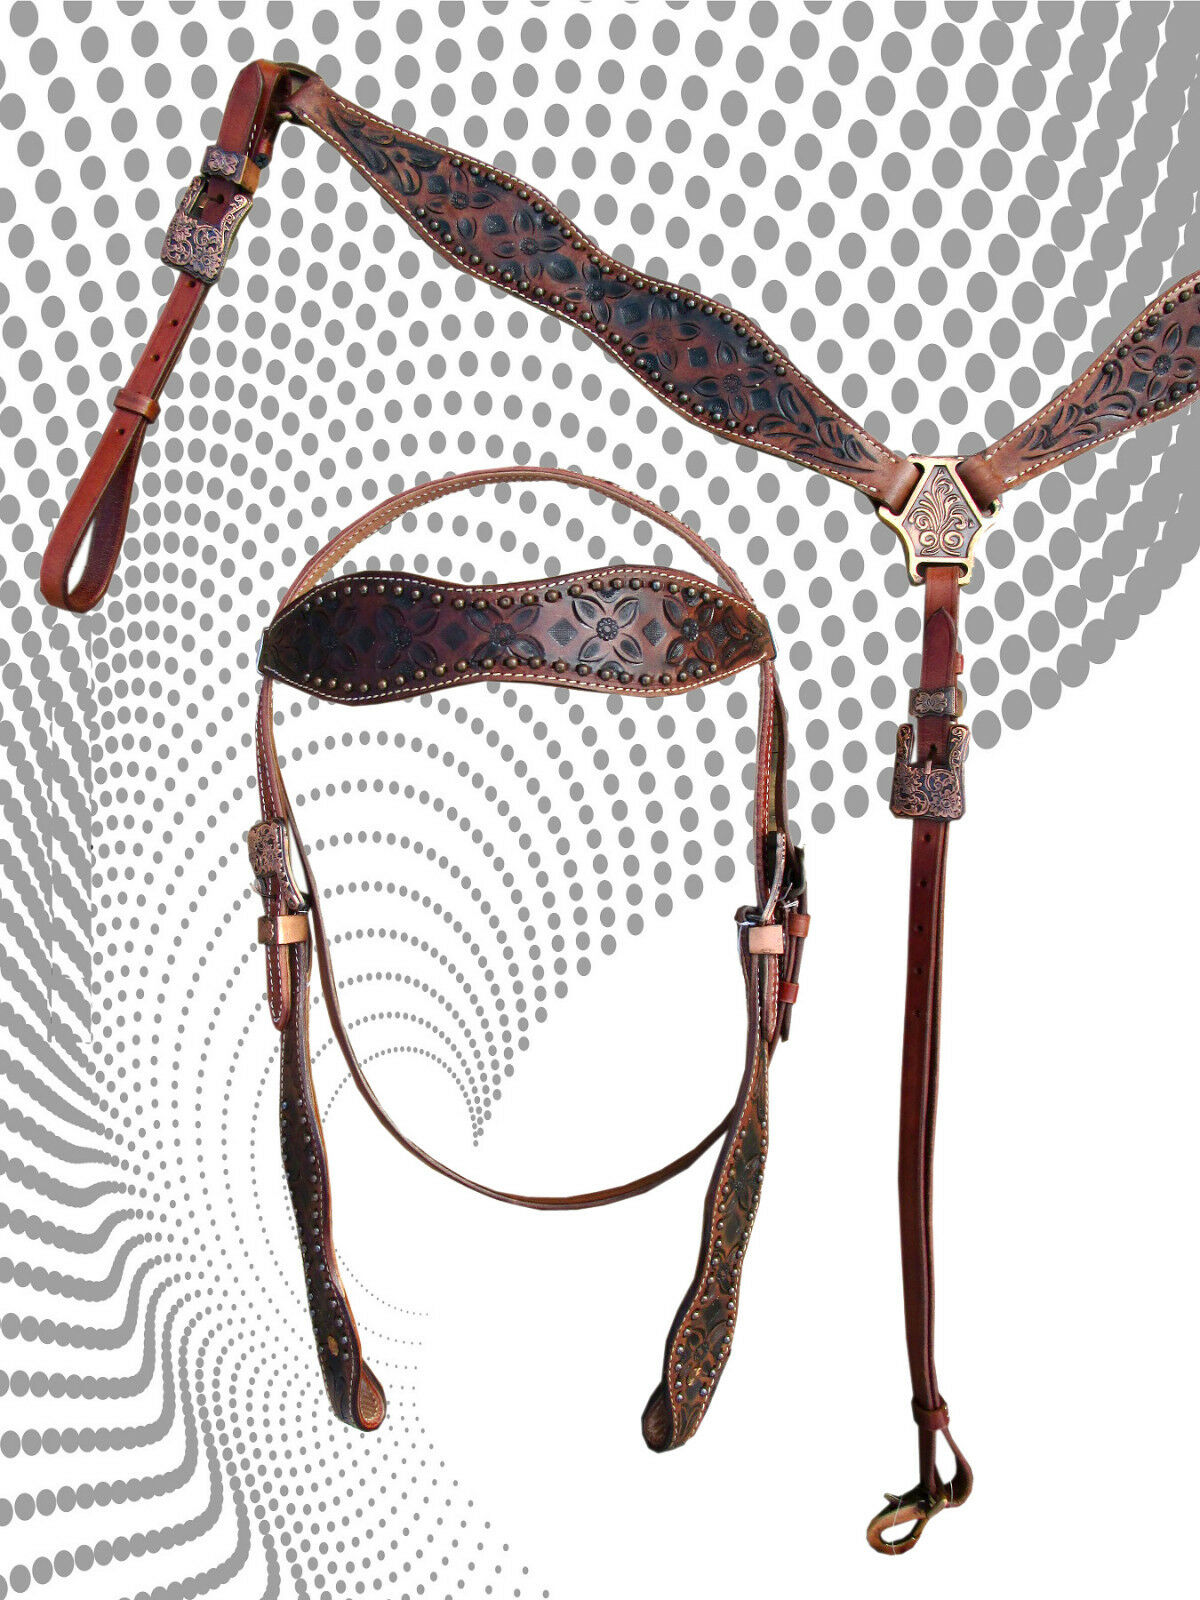 PRO WESTERN HEADSTALL BREAST COLLAR SET RACER SHOW TRAIL TOOLED LEATHER BRIDLE